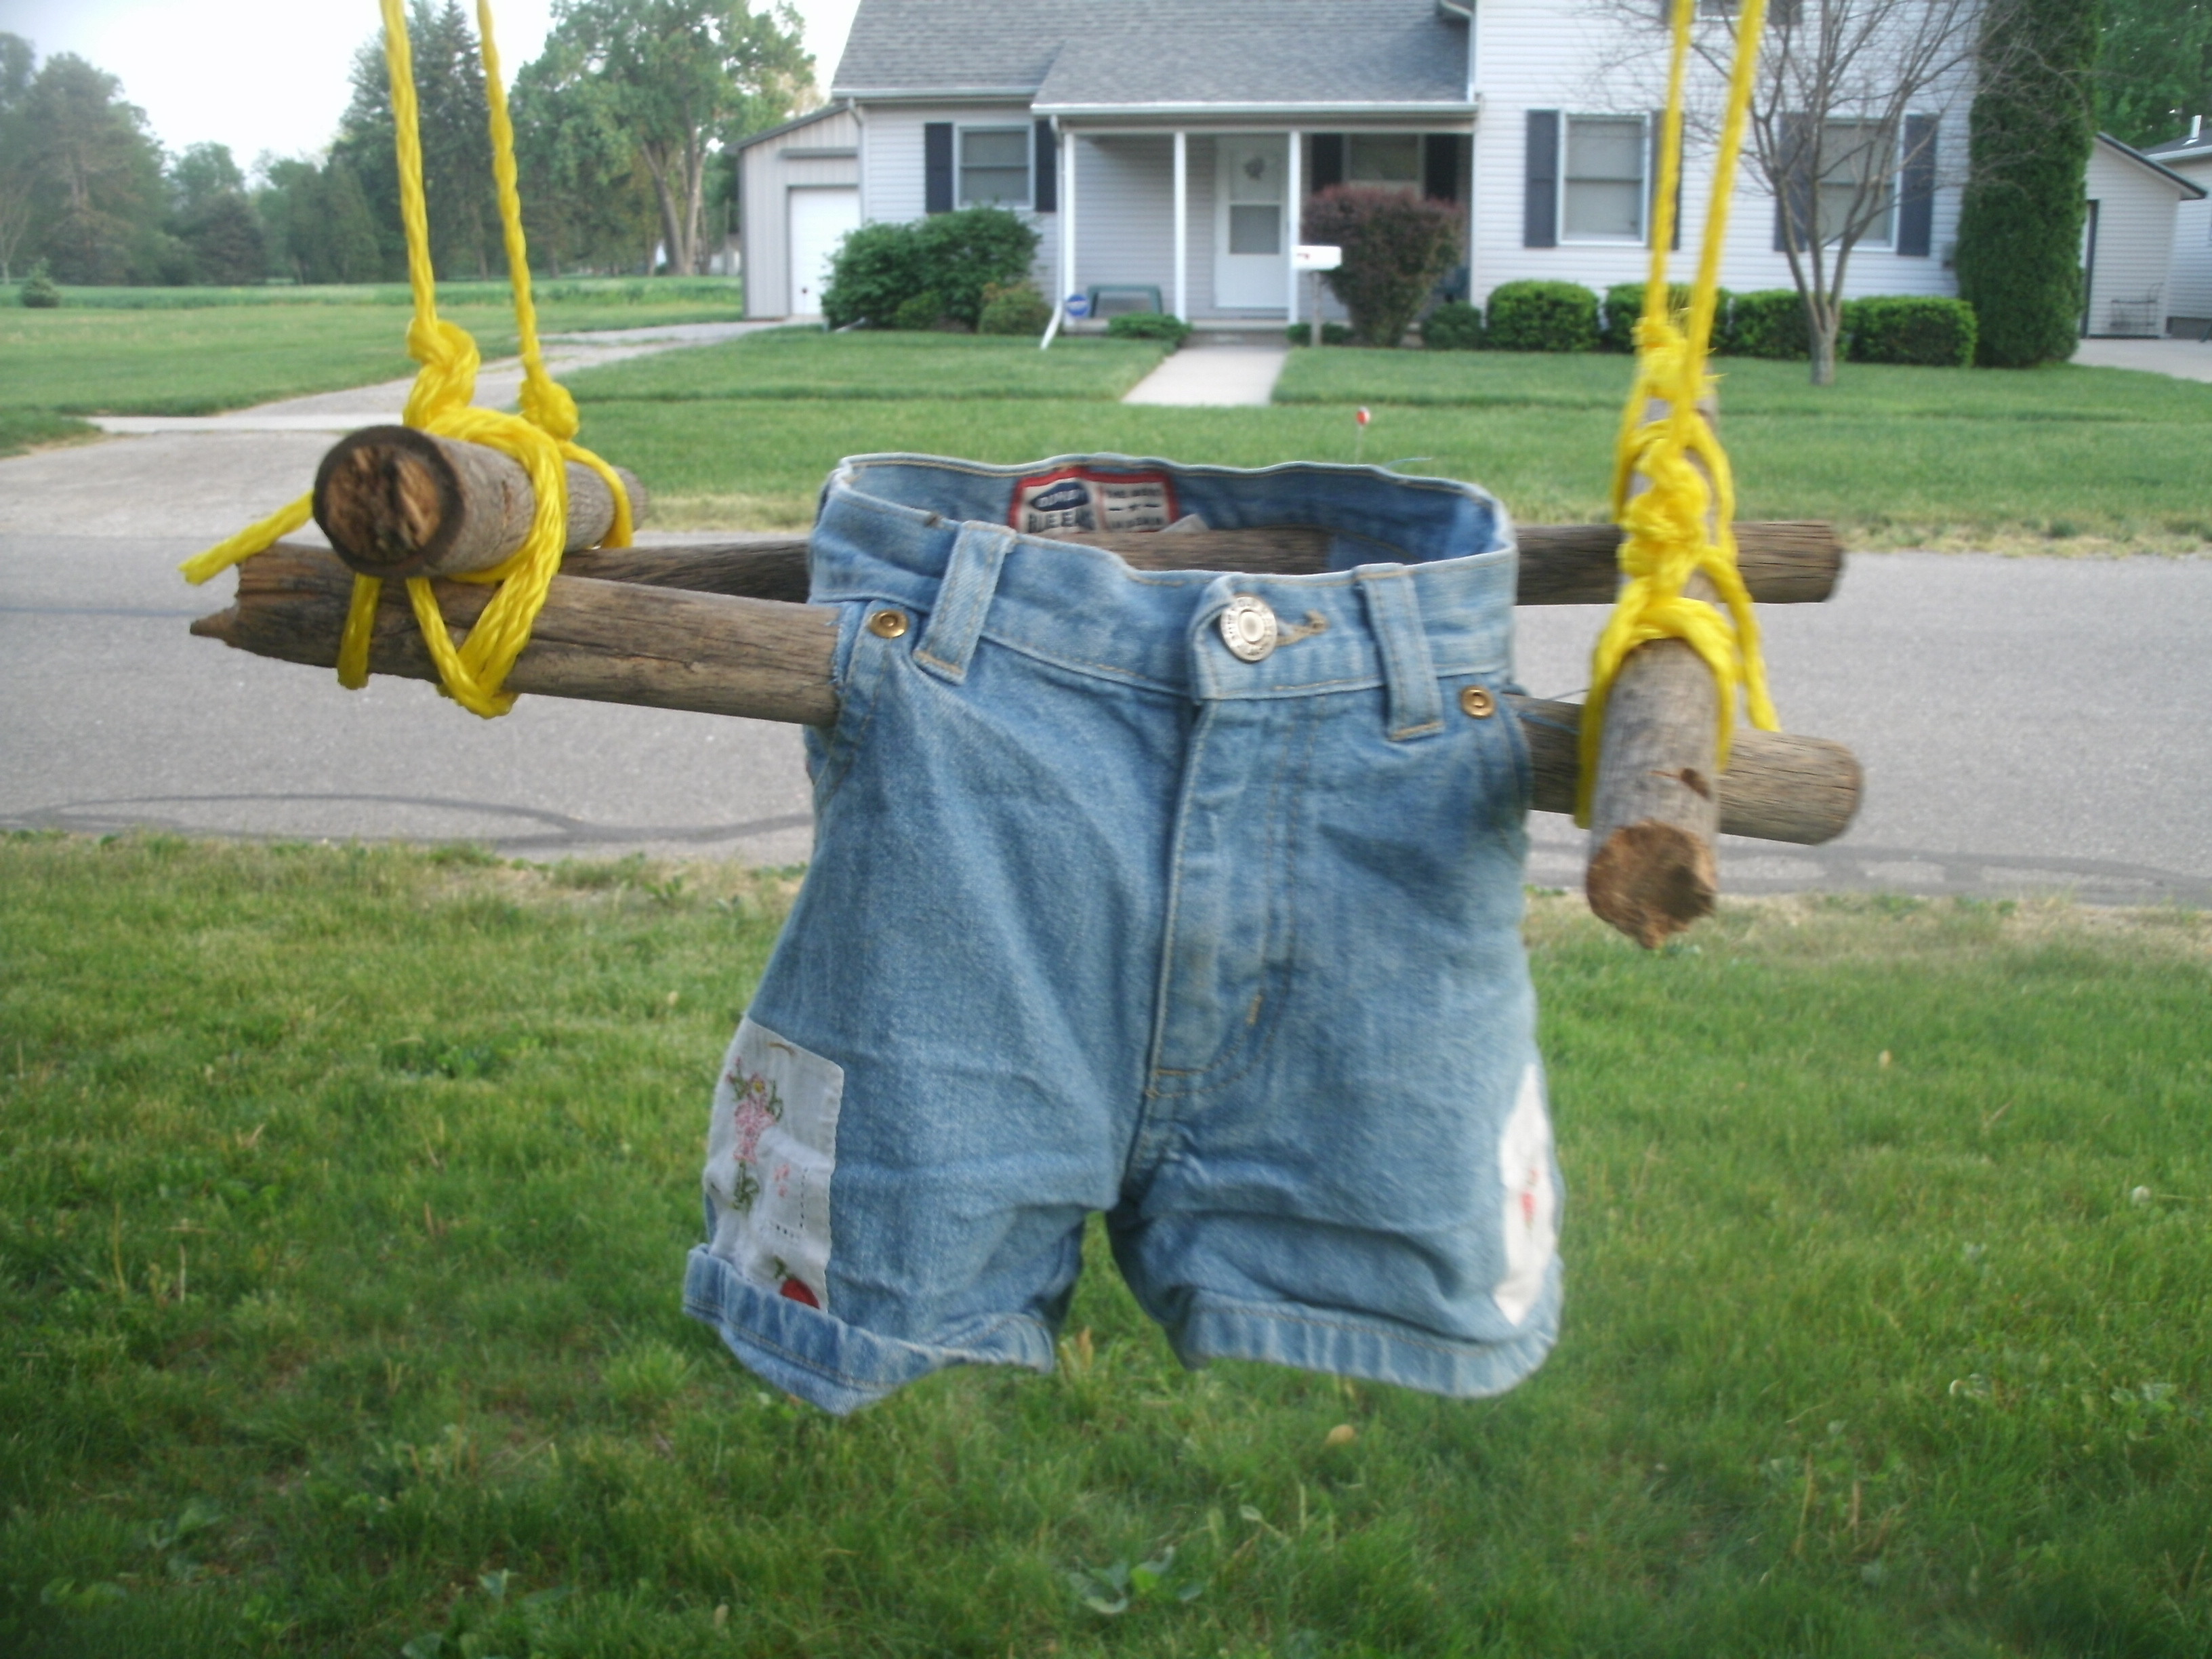 Best ideas about DIY Kids Swings . Save or Pin DIY Toddler Swing From Recycled Materials Now.